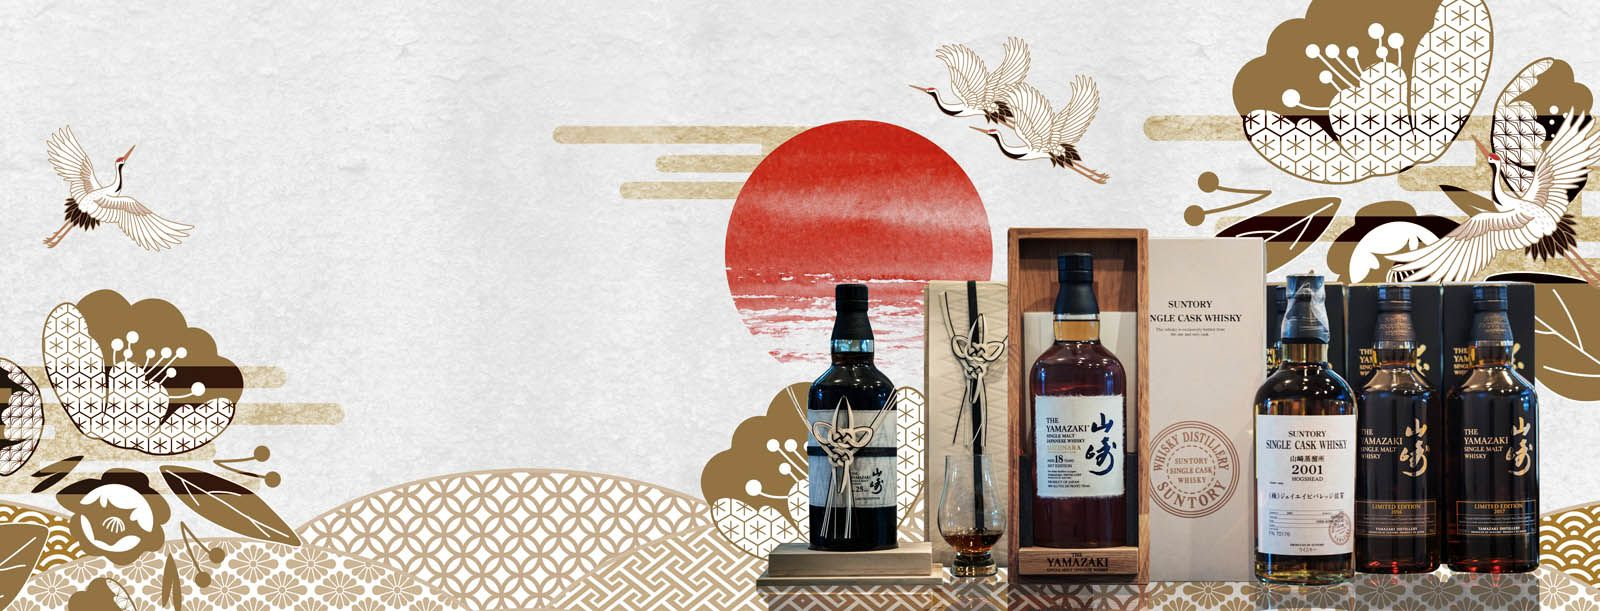 4 Rare Yamazaki Whiskies to Add to Your Collection